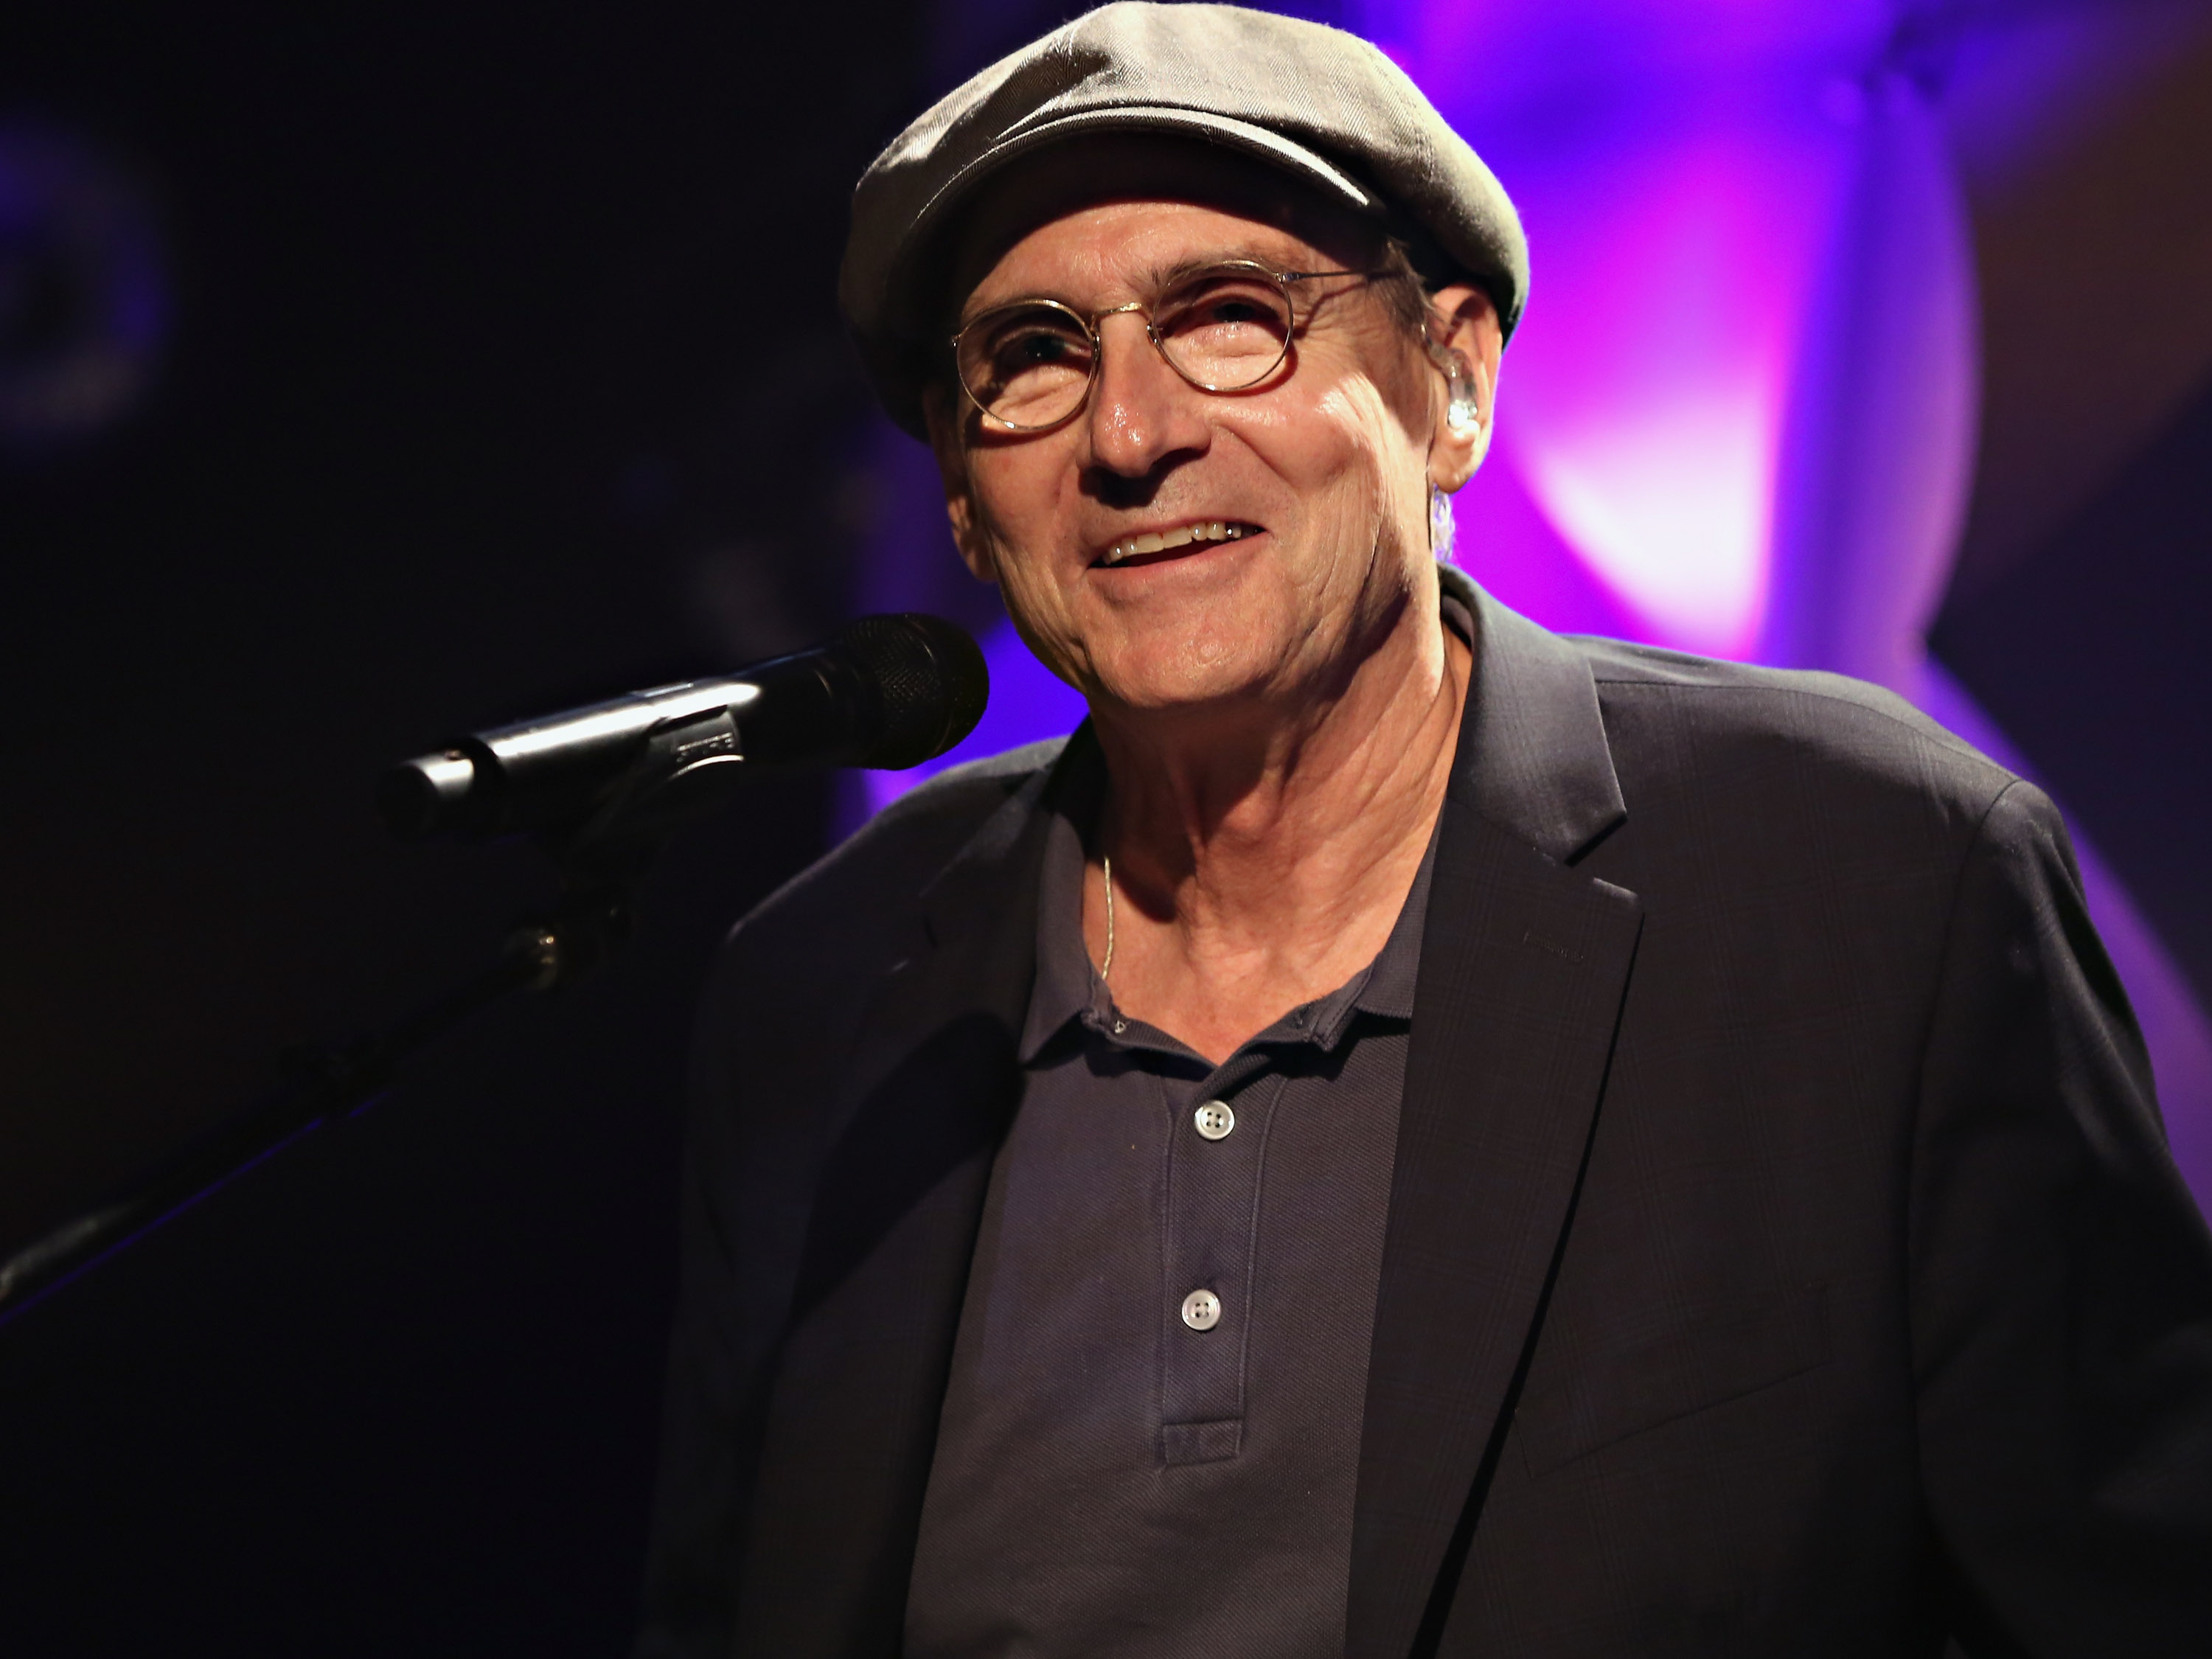 Singer-songwriter James Taylor speaks onstage during iHeartRadio ICONS with James Taylor presented by P.C. Richard & Son at iHeartRadio Theater on June 22, 2015 in New York City.